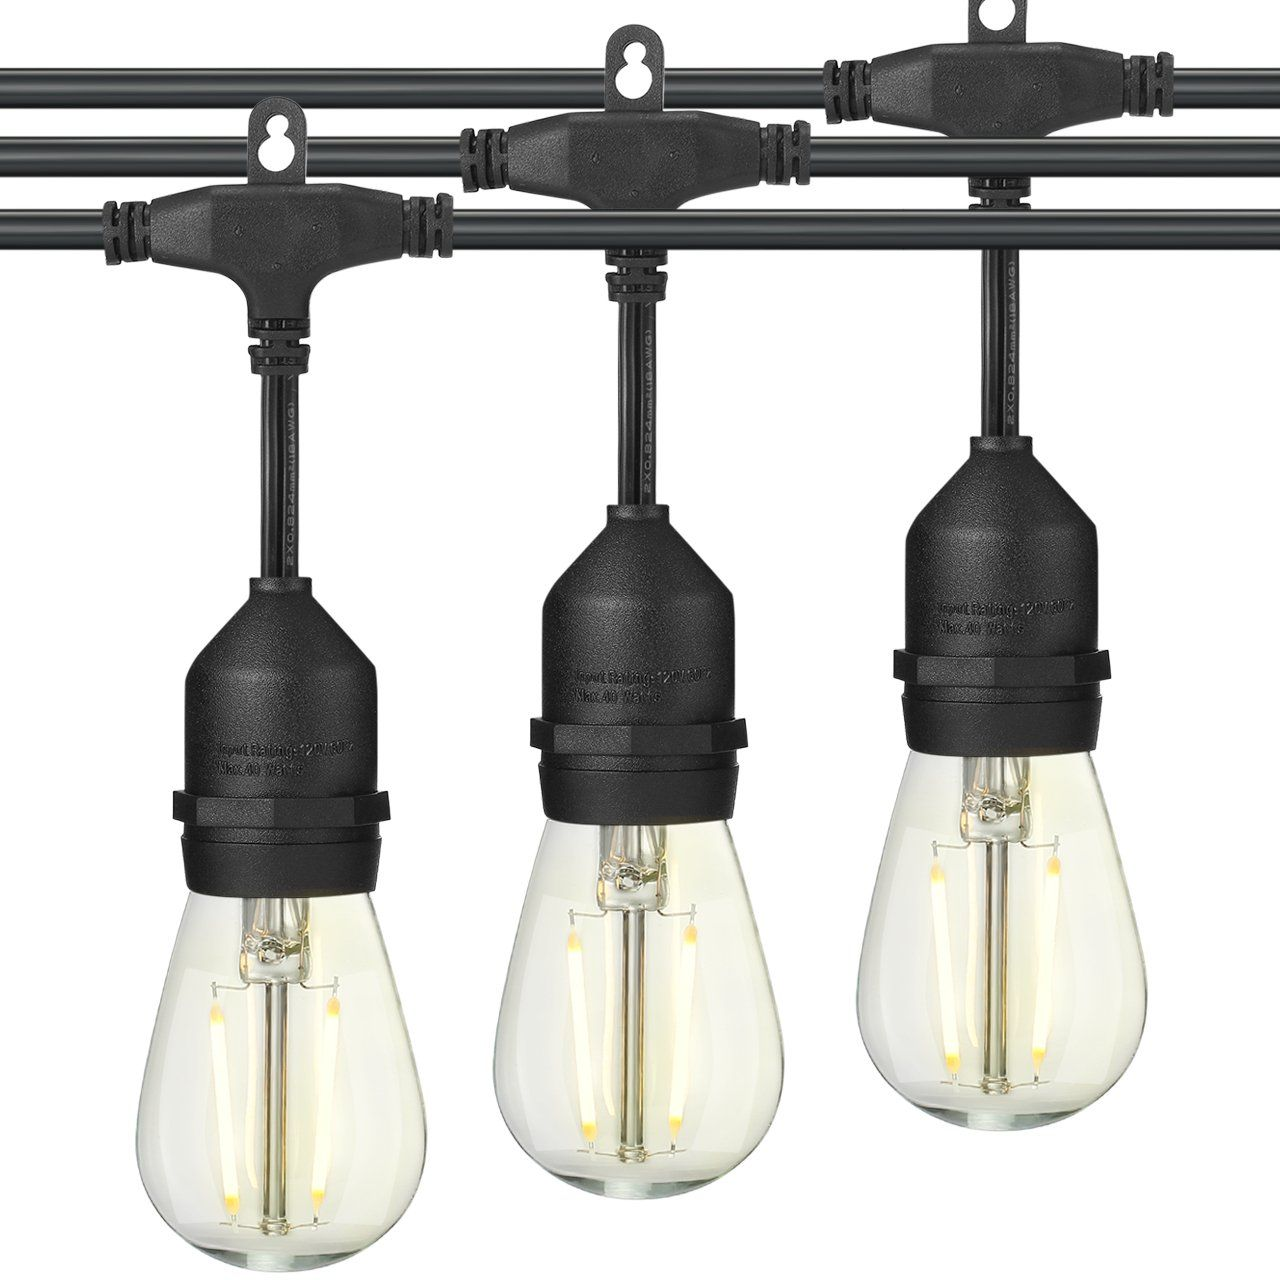 LED Outdoor String Lights E26 Dropped Sockets and Hanging Loops ...